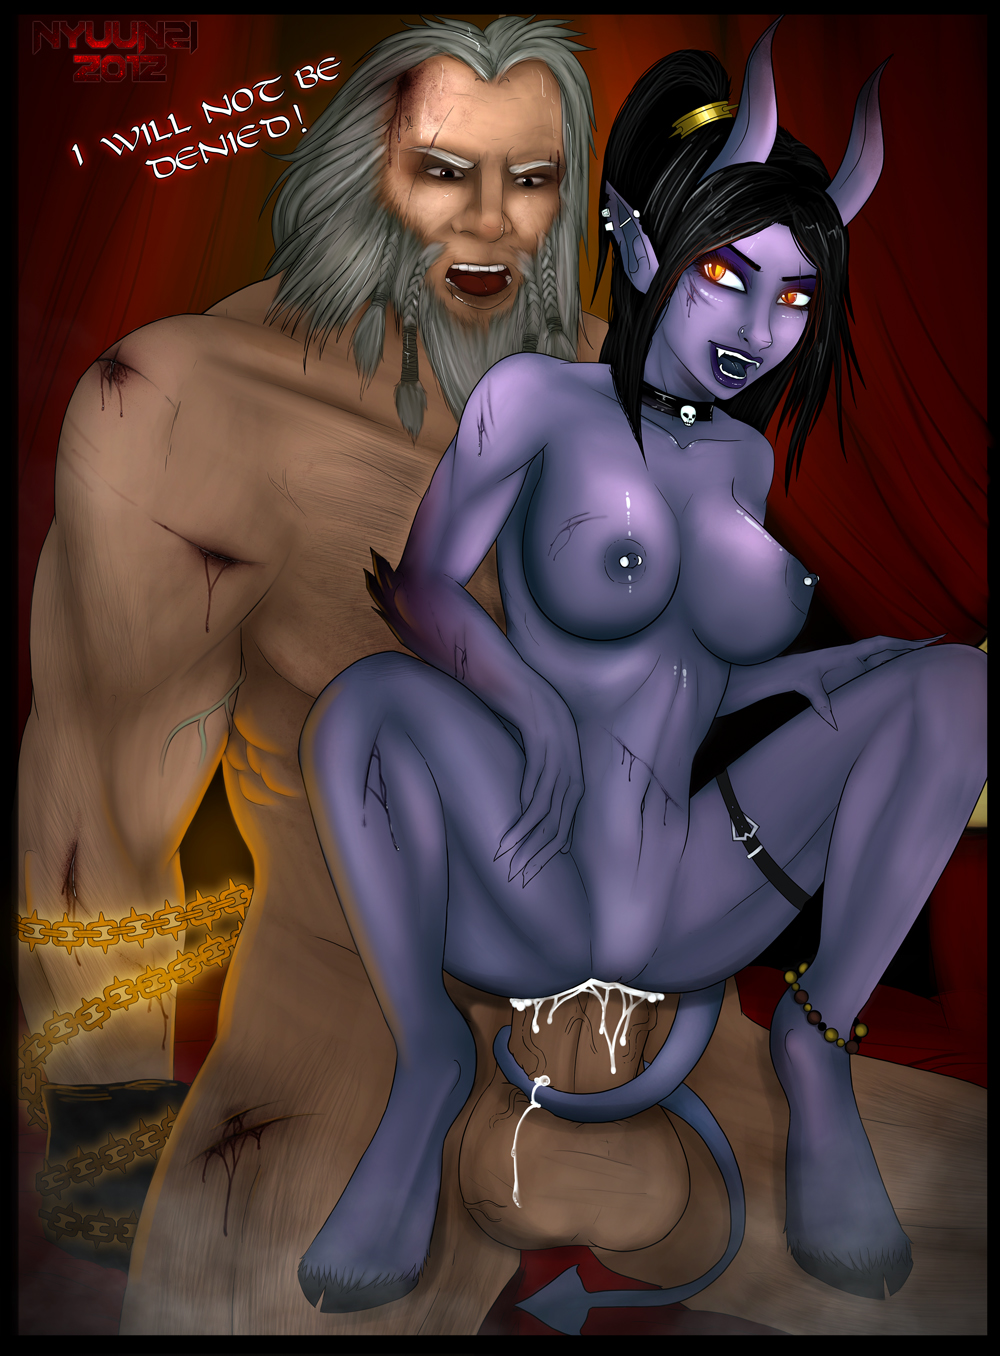 Diablo animated porn adult gallery